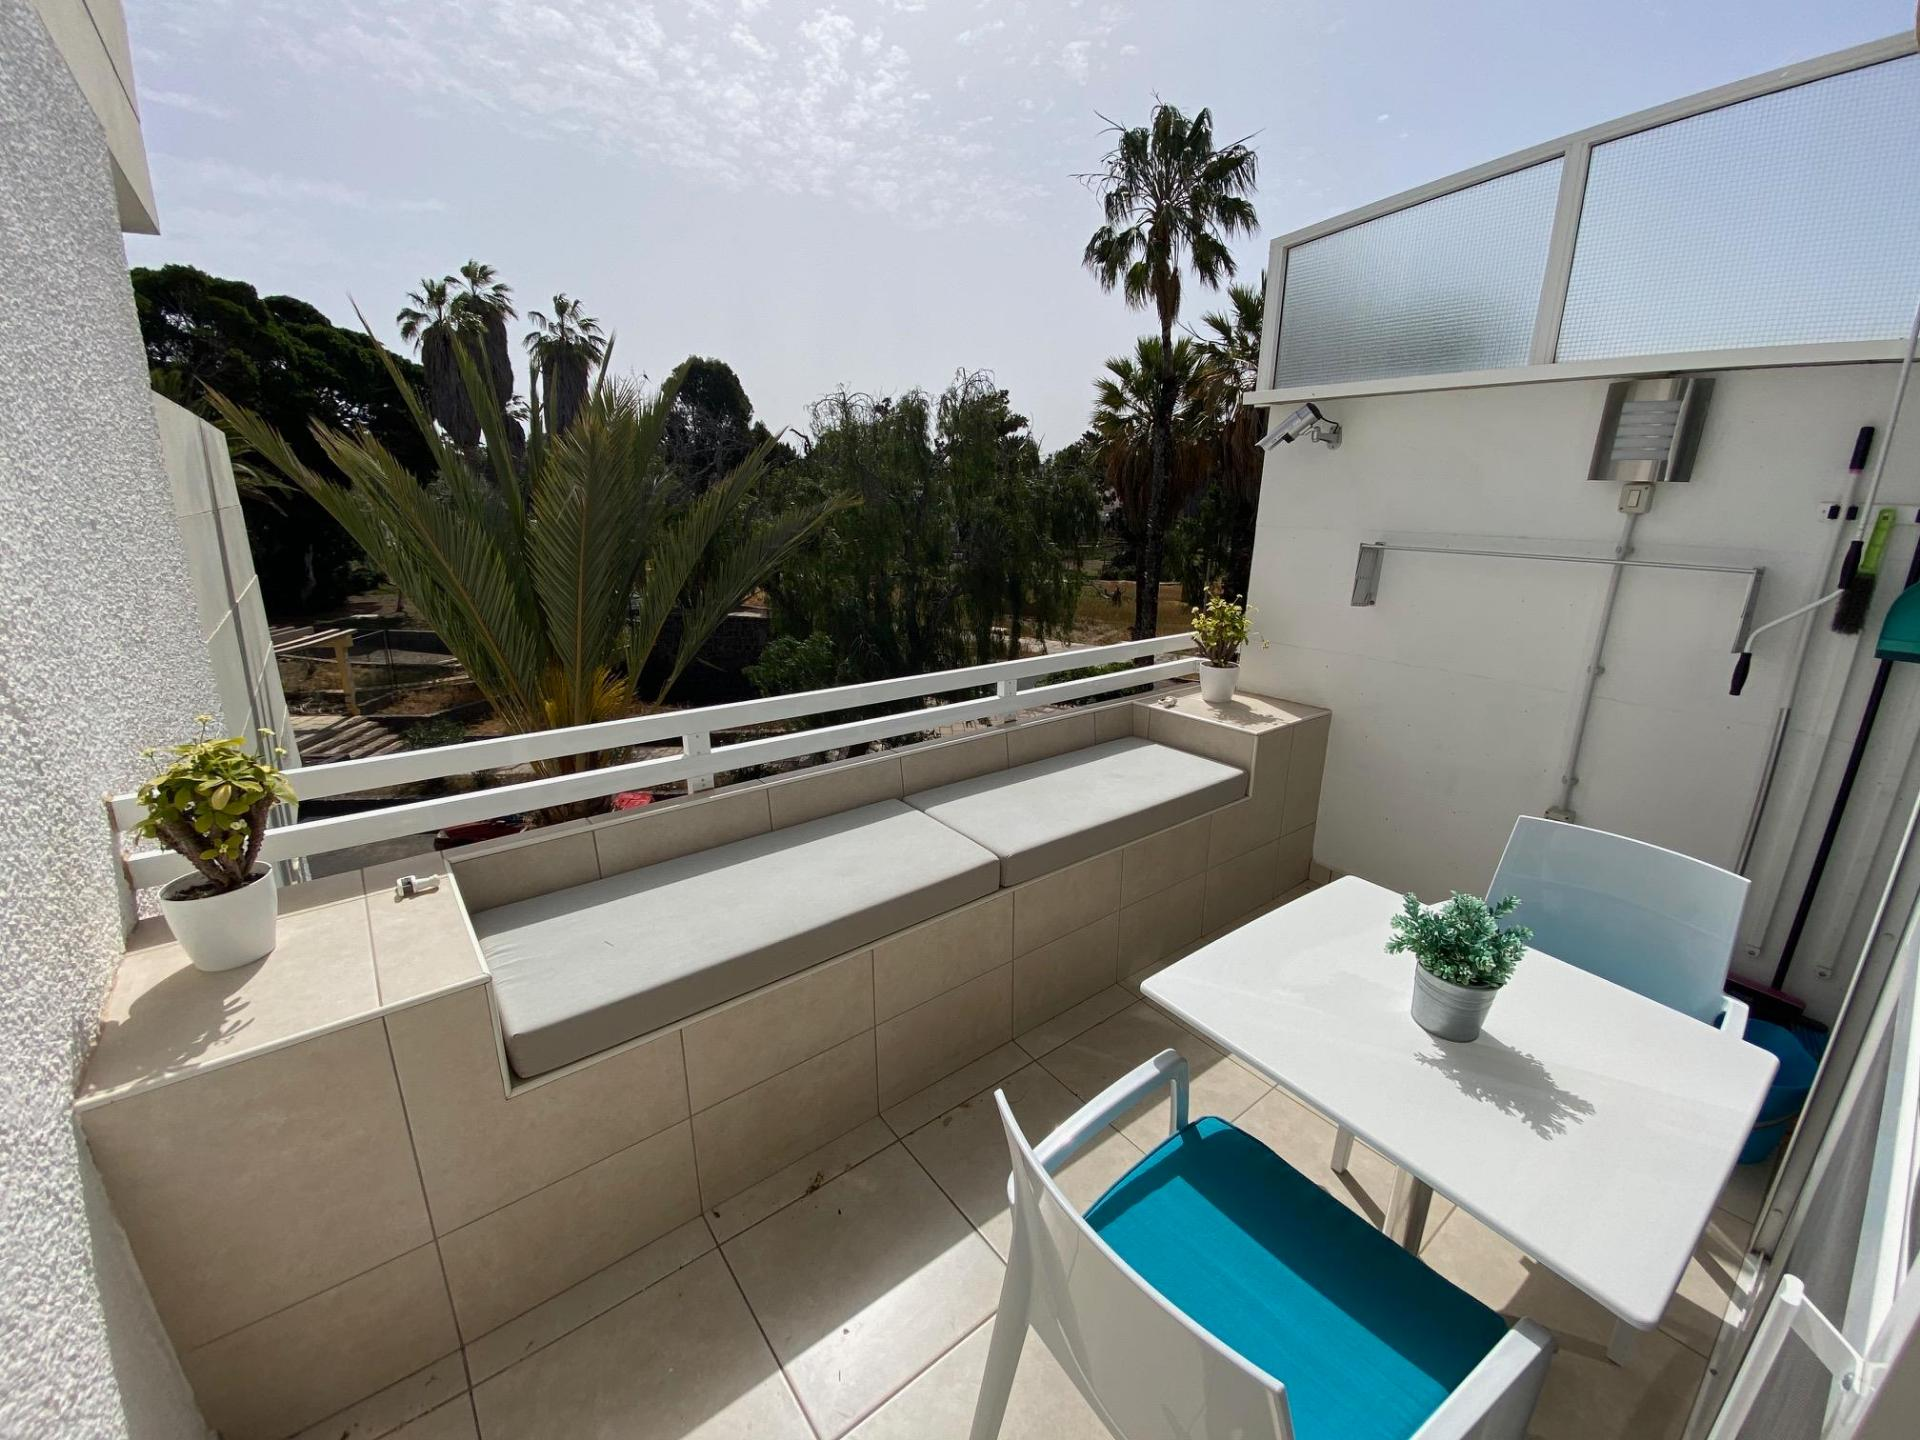 Very nice studio located on the 1st floor in Primavera, Costa del Silencio!The terrace of .... more info